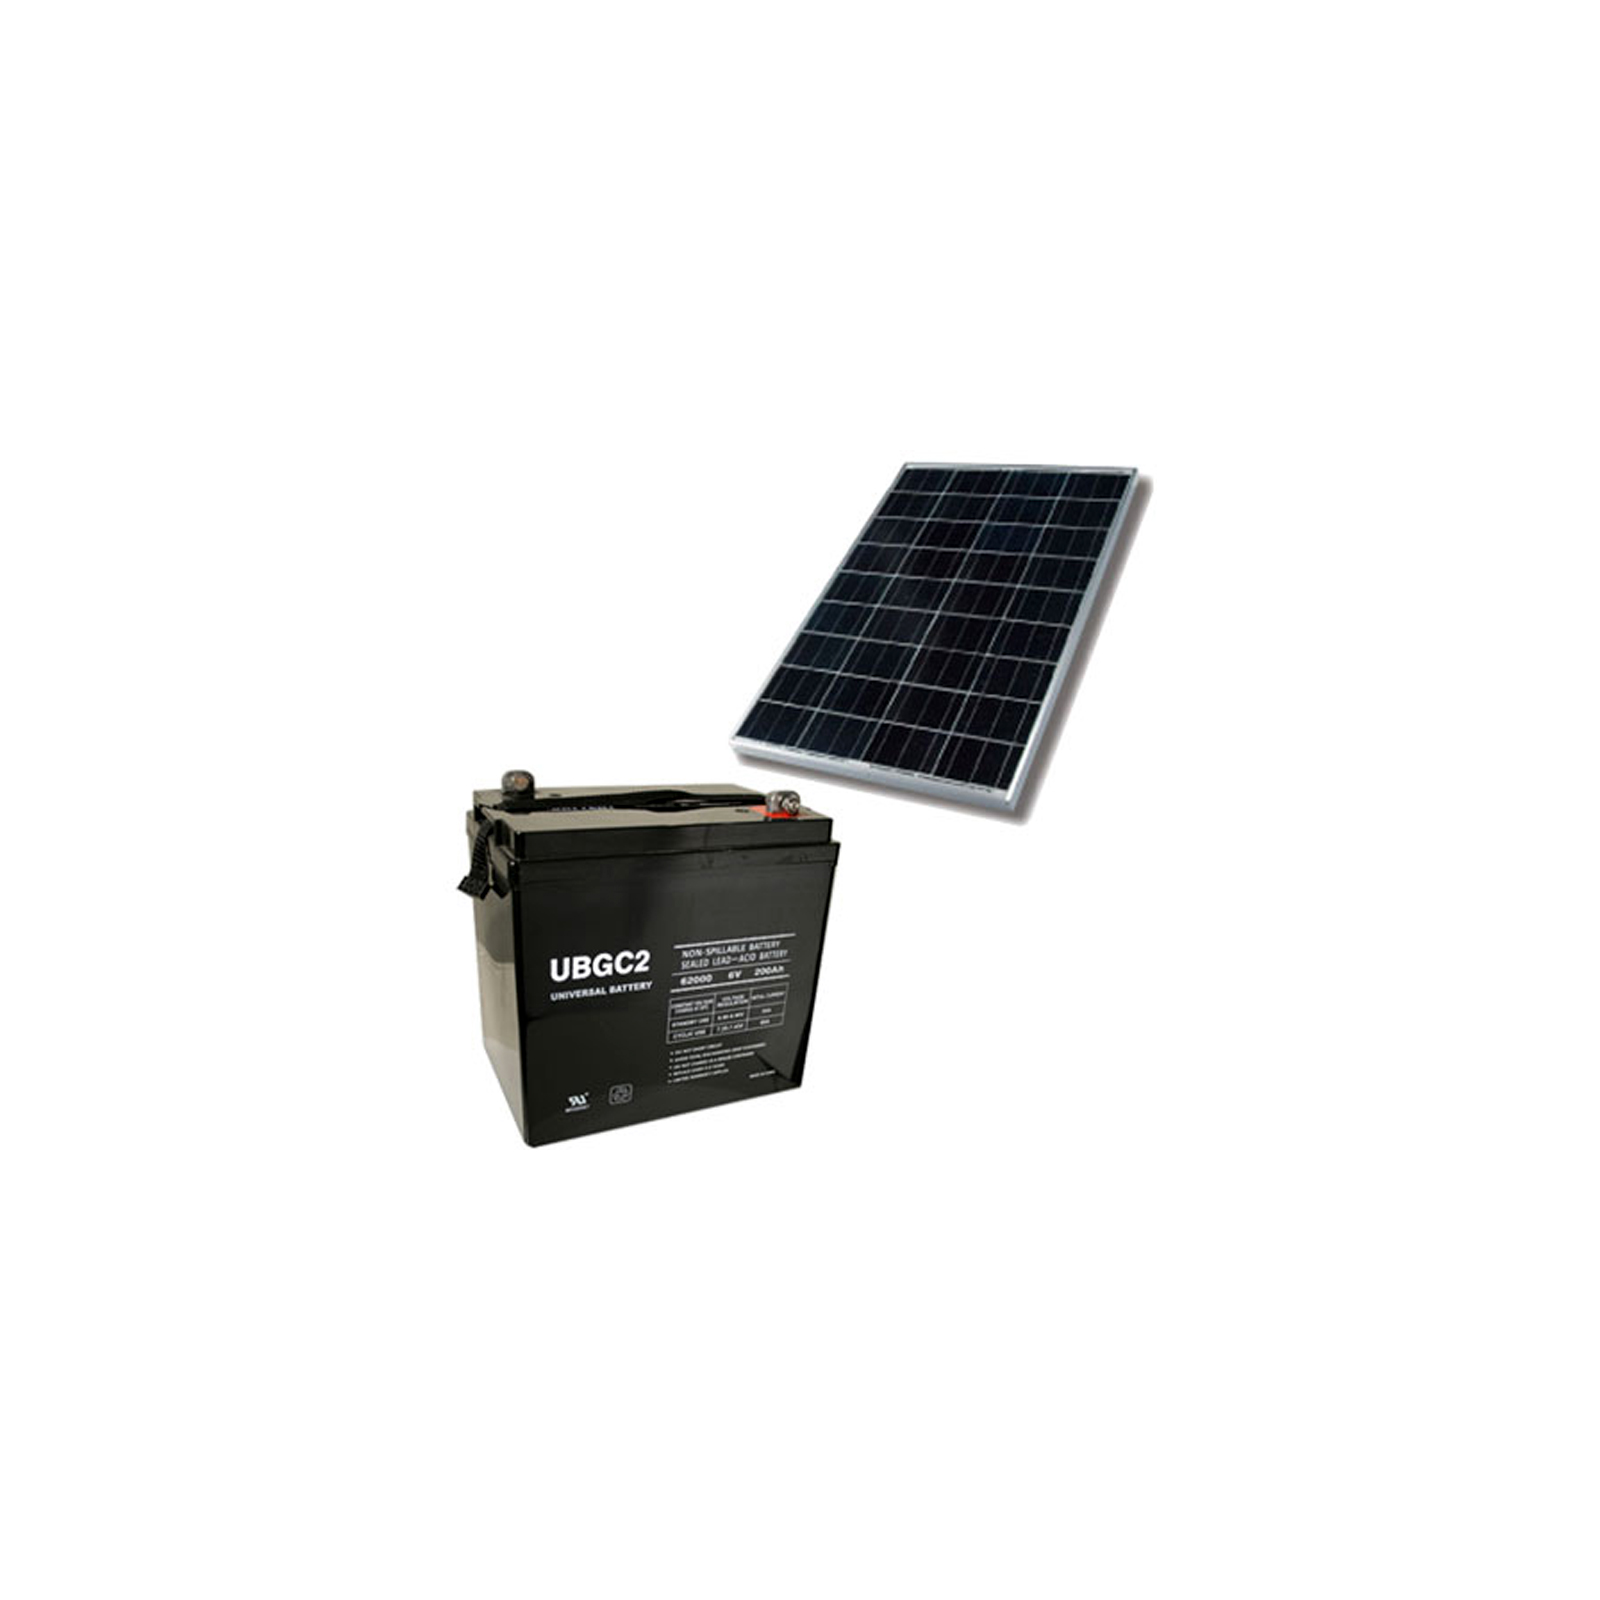 Rv Solar Battery Charger System : W rv marine mobile solar panel system kit battery ebay